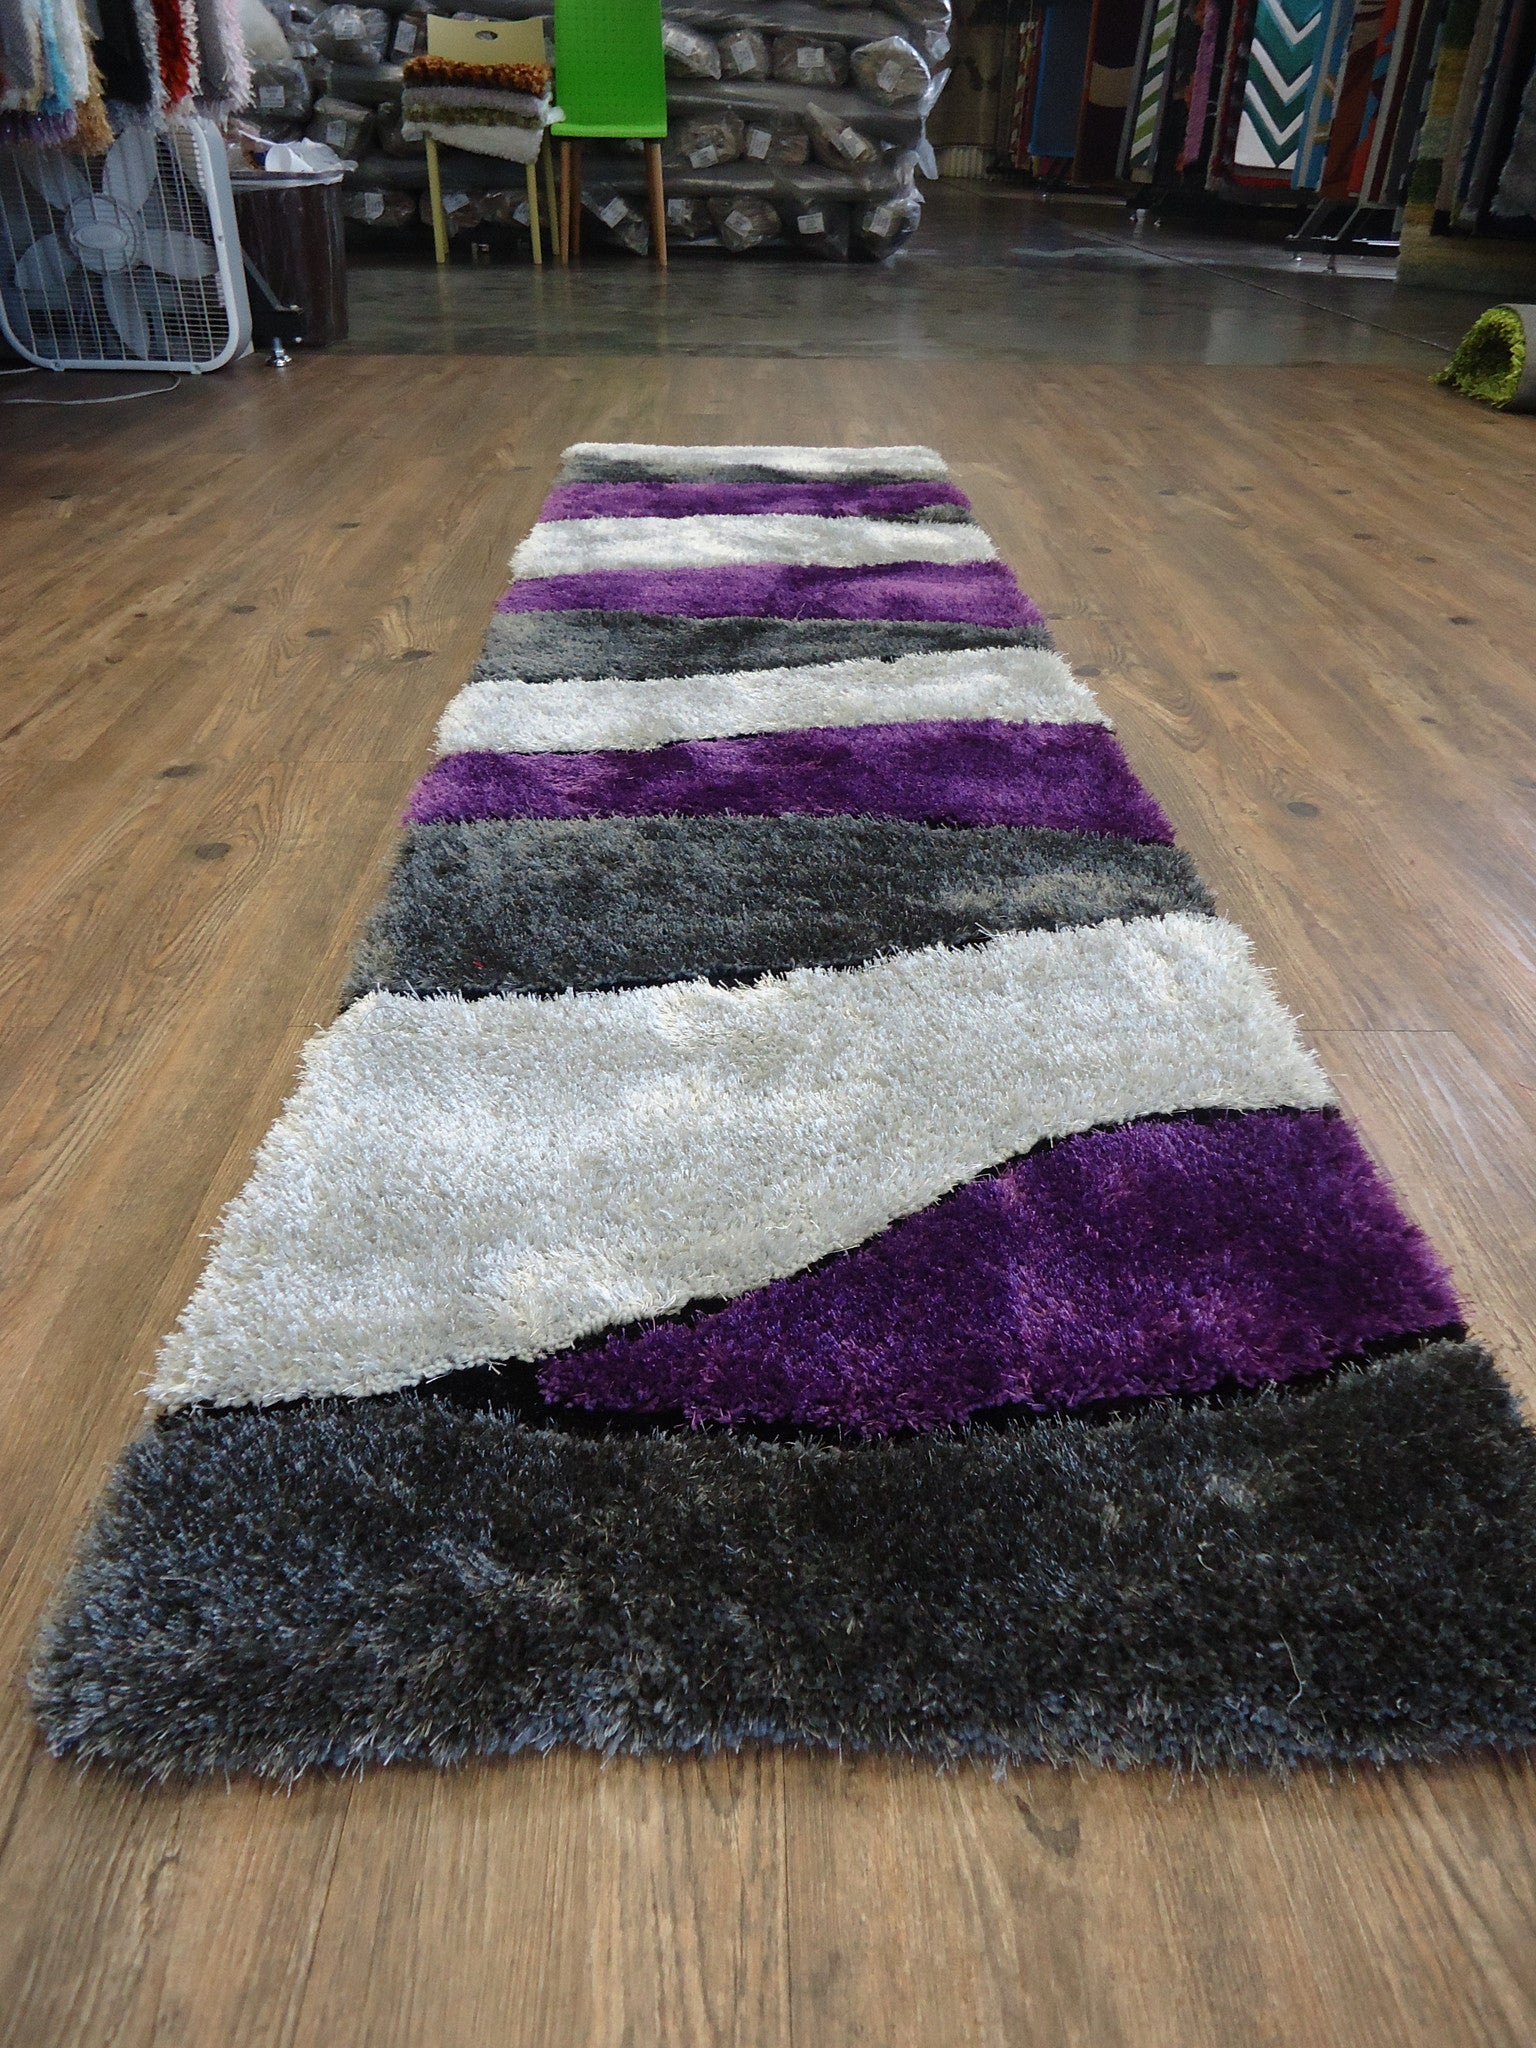 Handmade Vibrant Gray With Purple Shag Area Rug With Hand